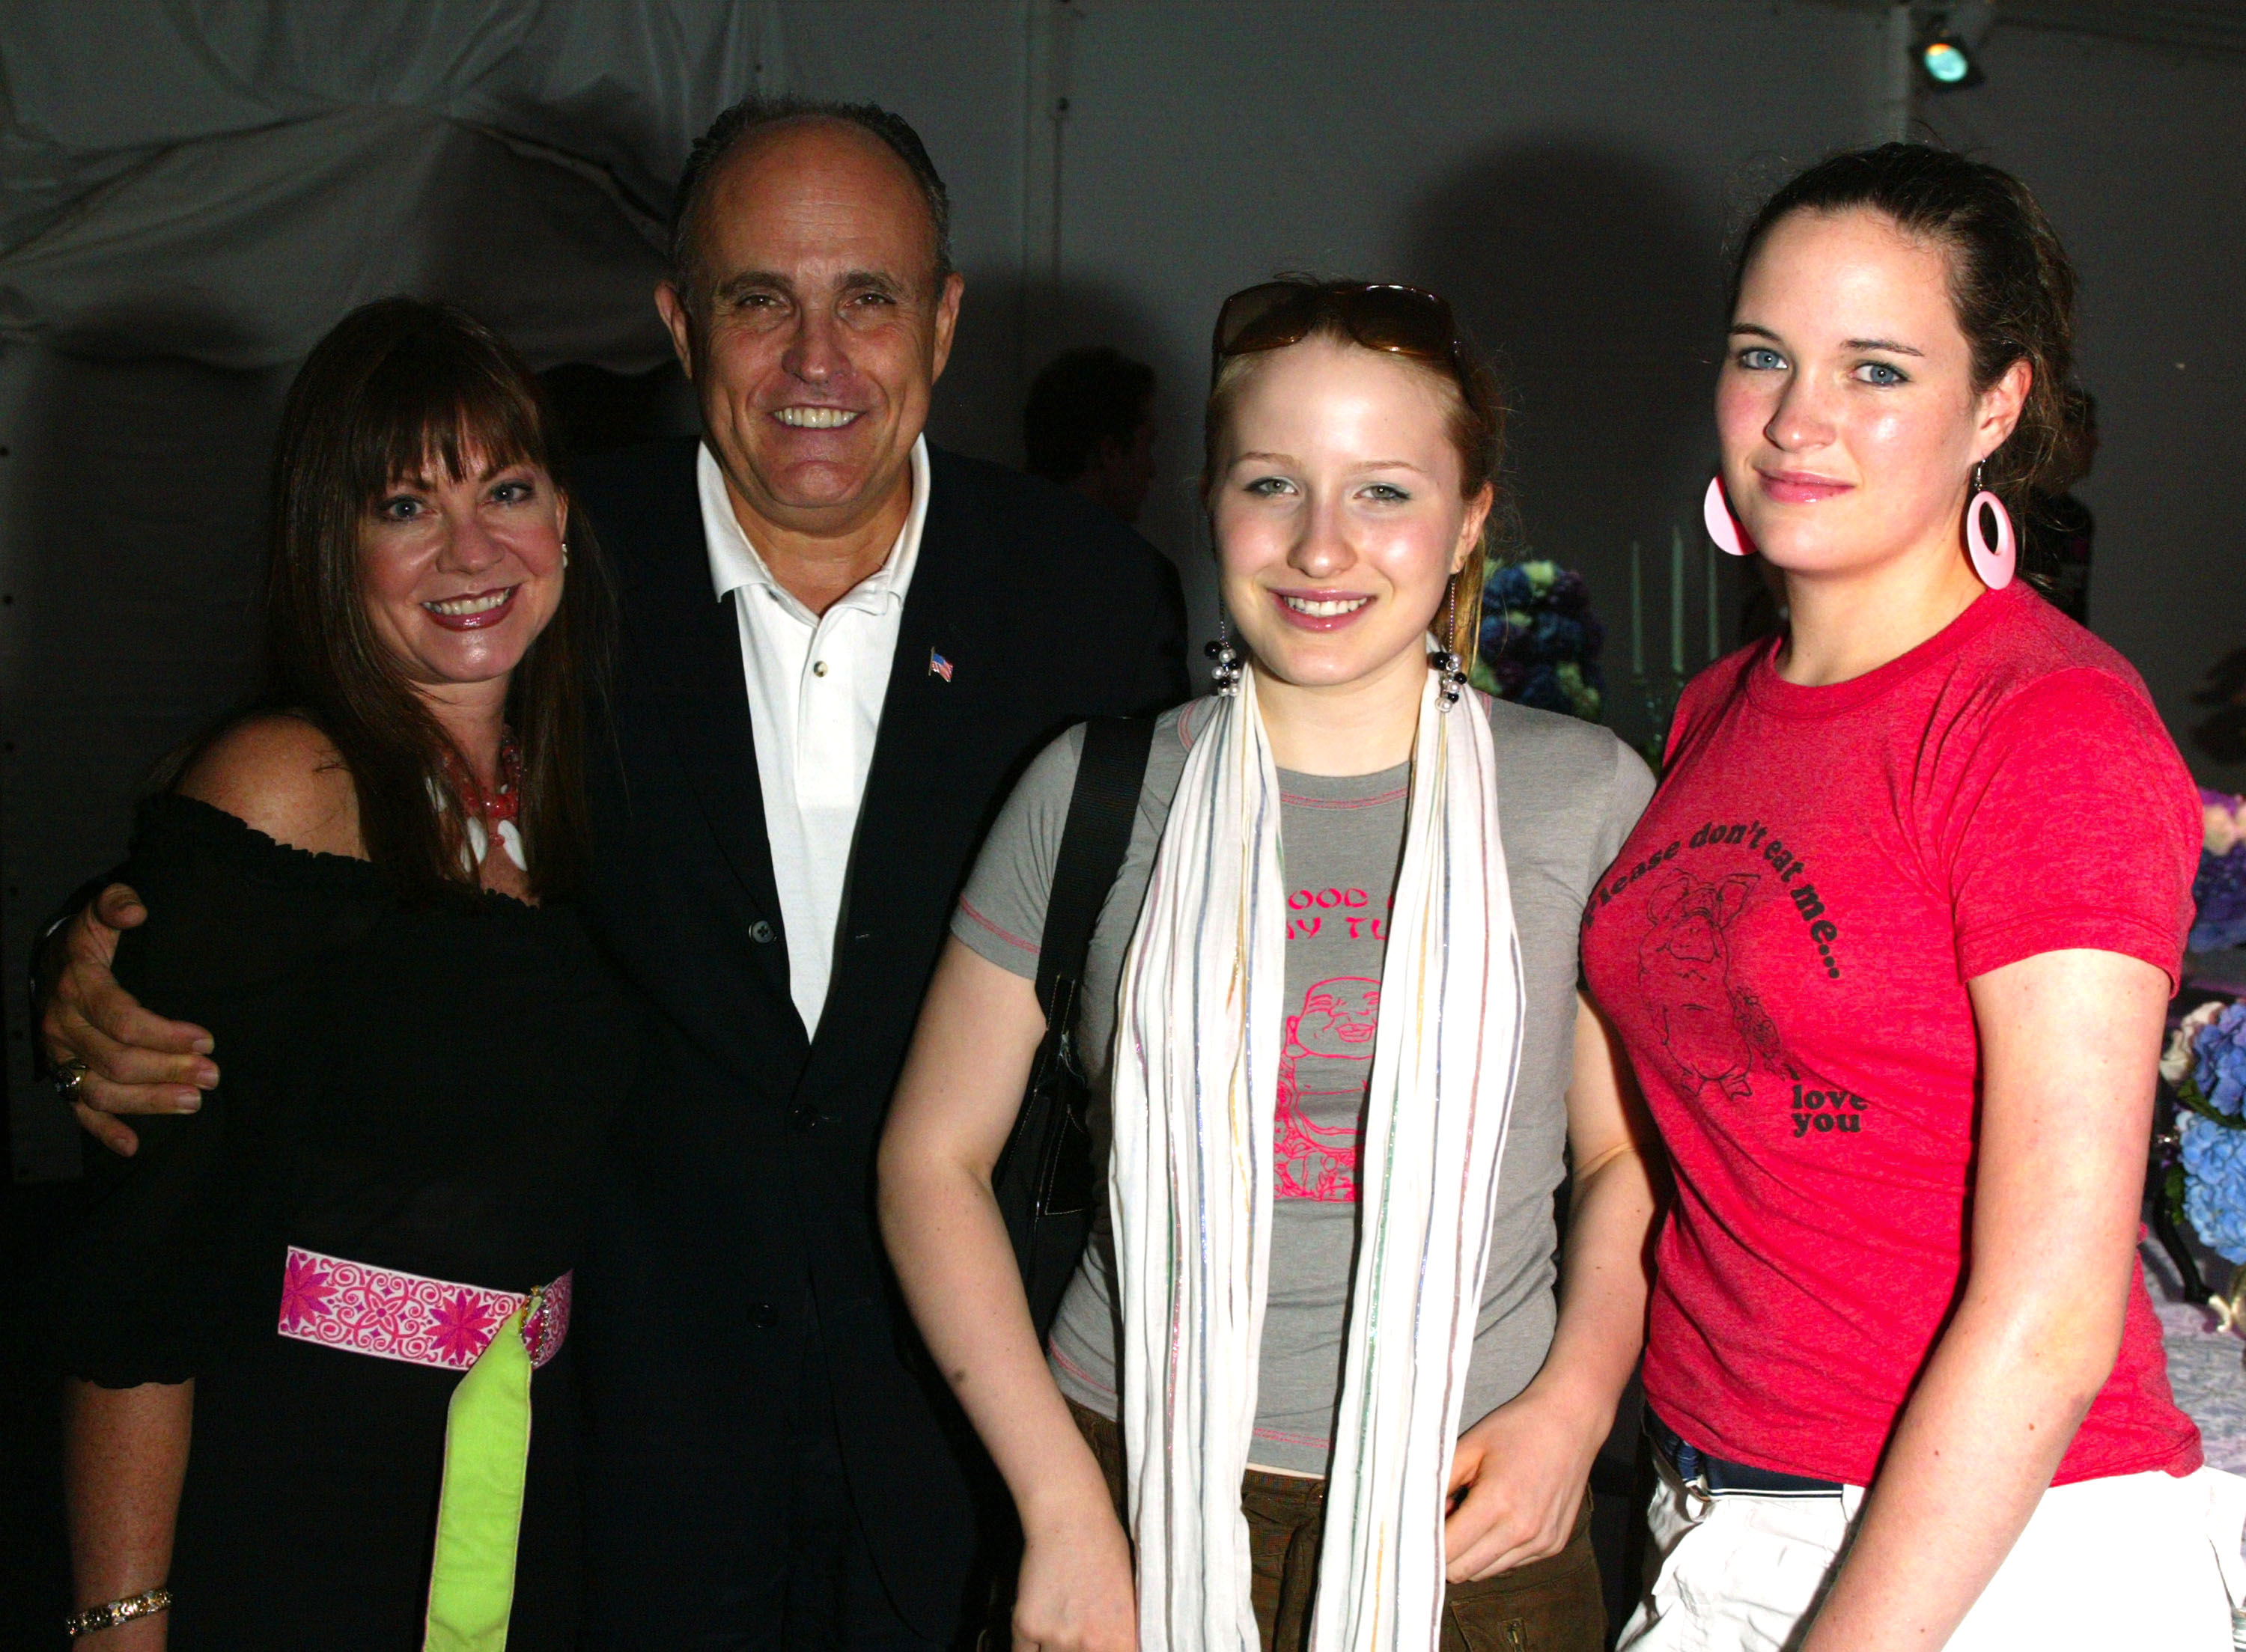 """SOUTHAMPTON, NY - AUGUST 9: (U.S. TABS AND HOLLYWOOD REPORTER OUT) Former New York City Mayor Rudy Giuliani, his wife Judith Nathan, Caroline Nathan and family friend Anne Sullivan attend the afterparty for the Southampton premiere of """"Uptown Girls"""" at the Atlantic Hotel August 9, 2003 in Southampton, New York. (Photo by Matthew Peyton/Getty Images)"""